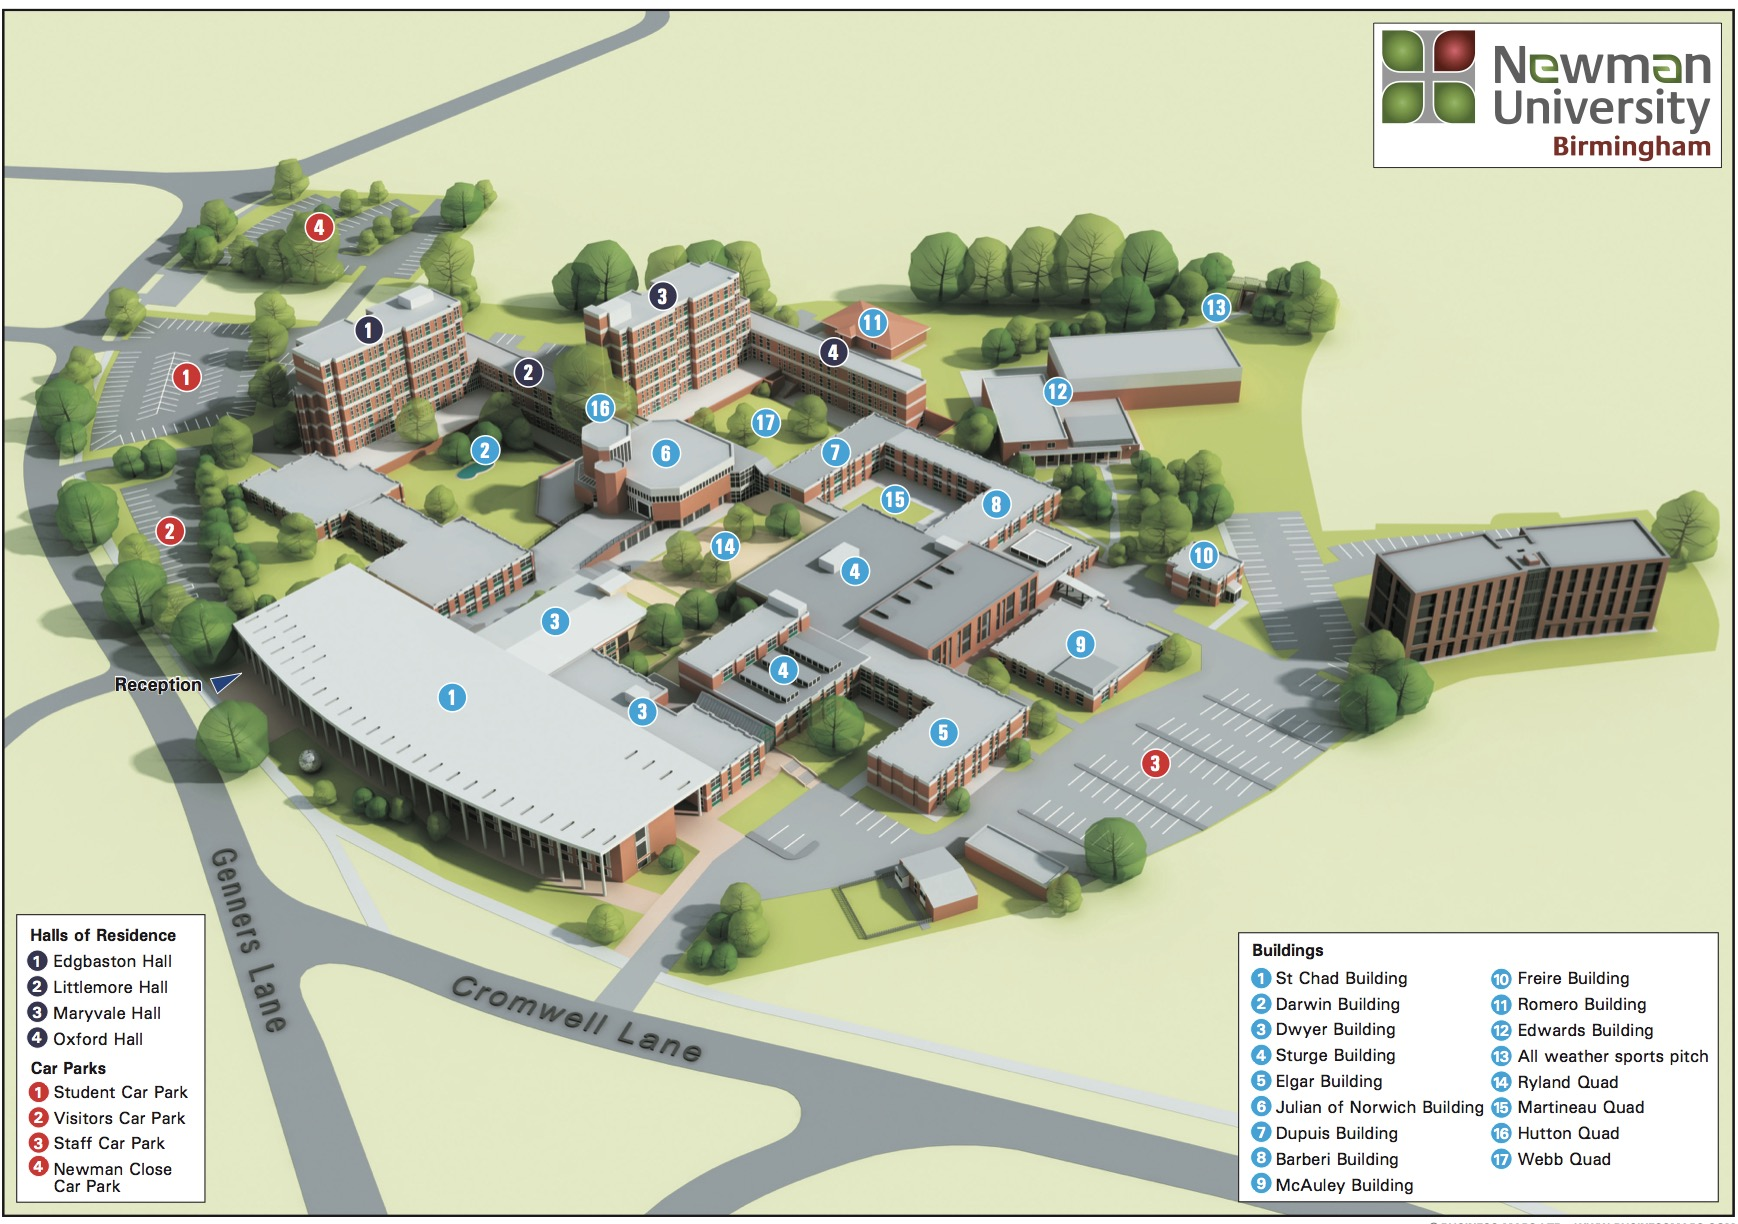 Norwich University Campus Map File:Newman University, Campus Map.   Wikimedia Commons